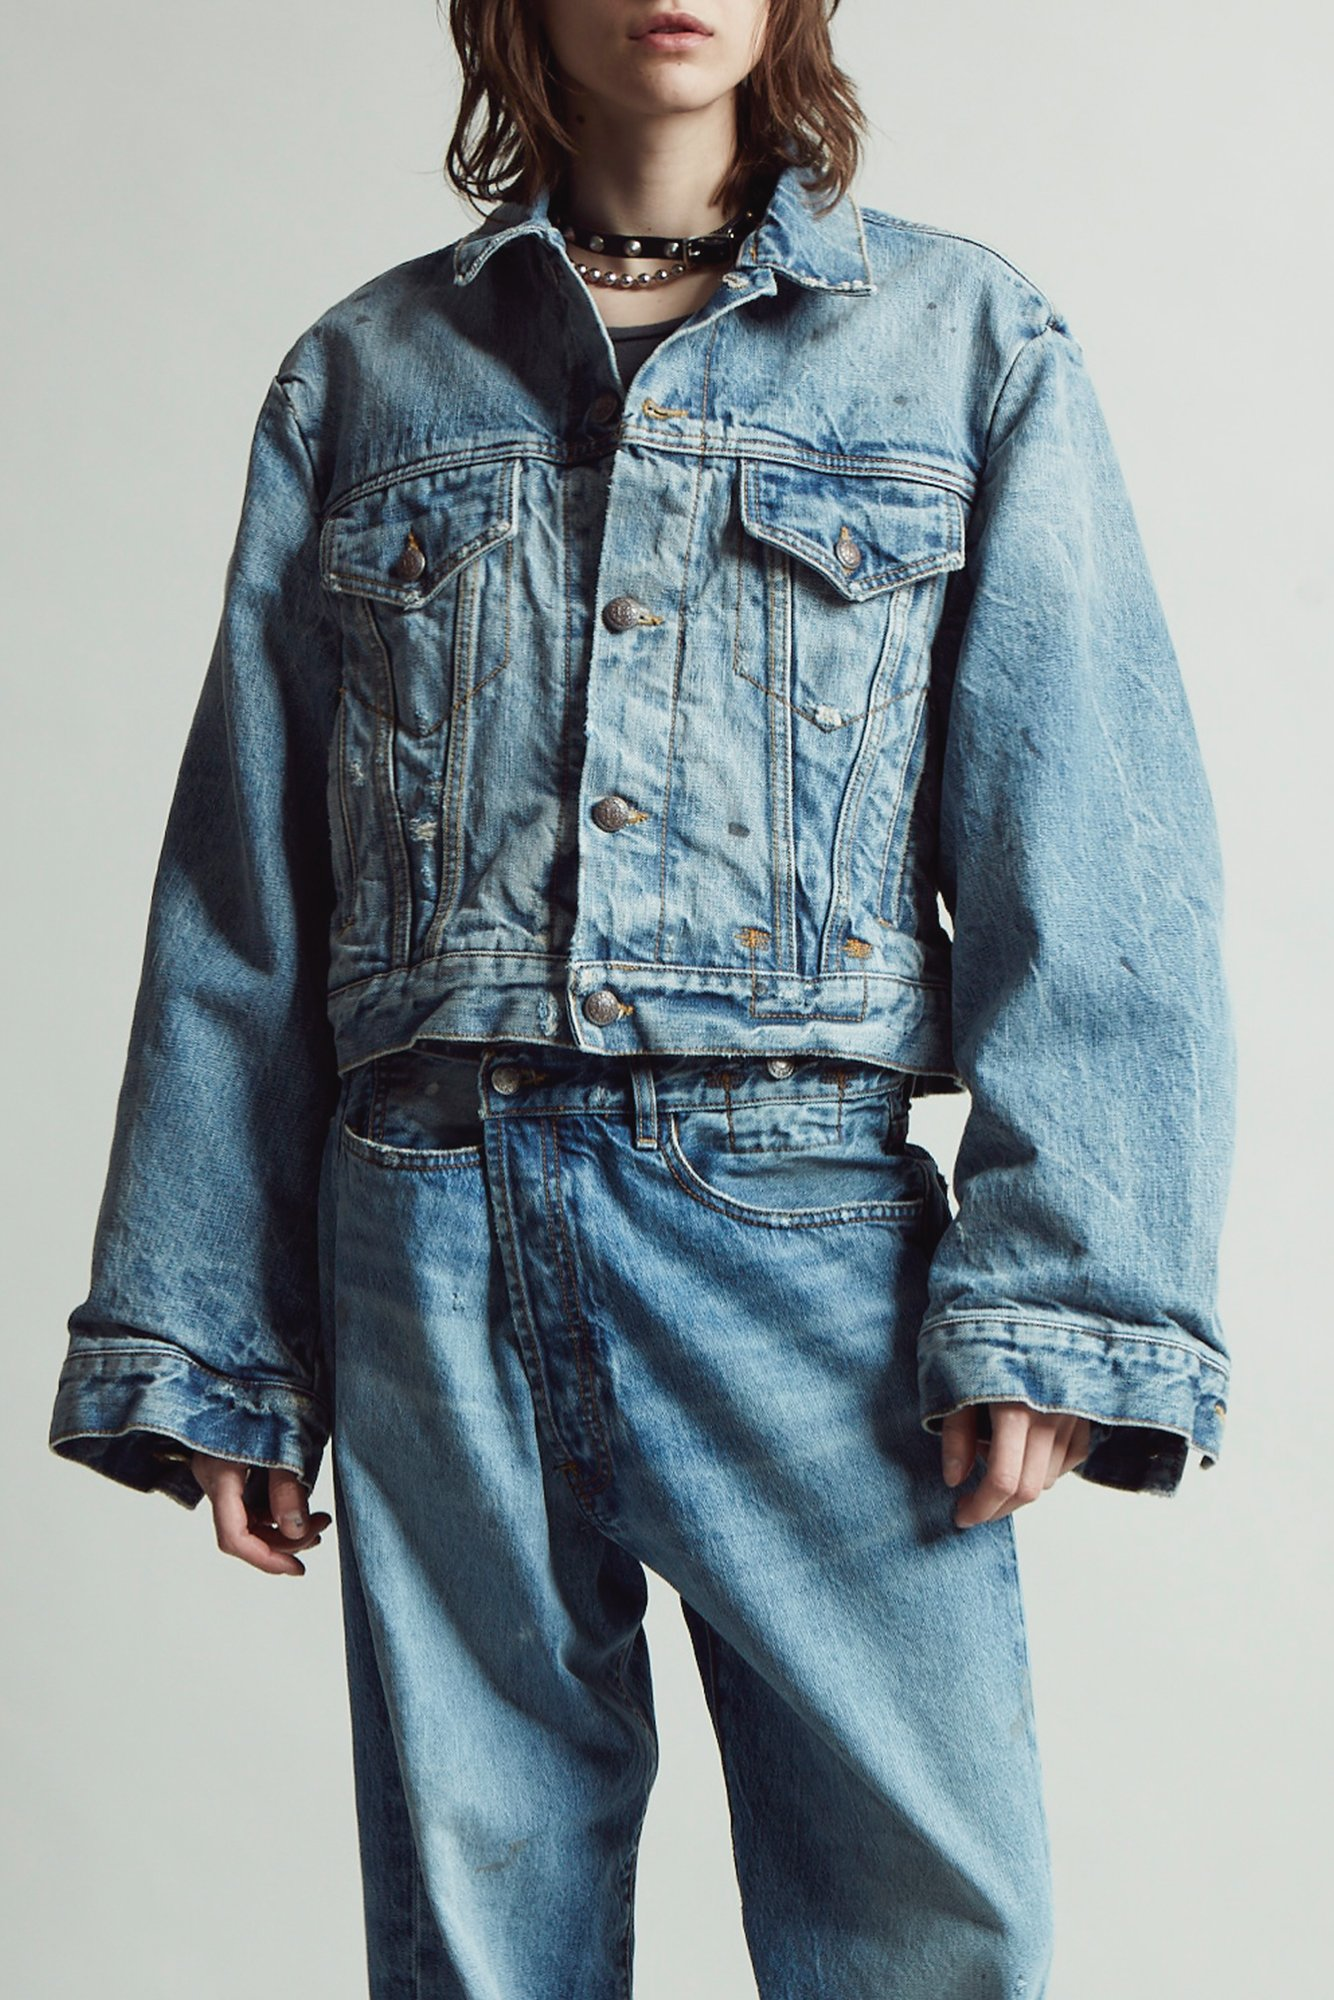 crossover jeans, wrap jeans, denim, jeans denim jacket, frayed jeans, raw hem